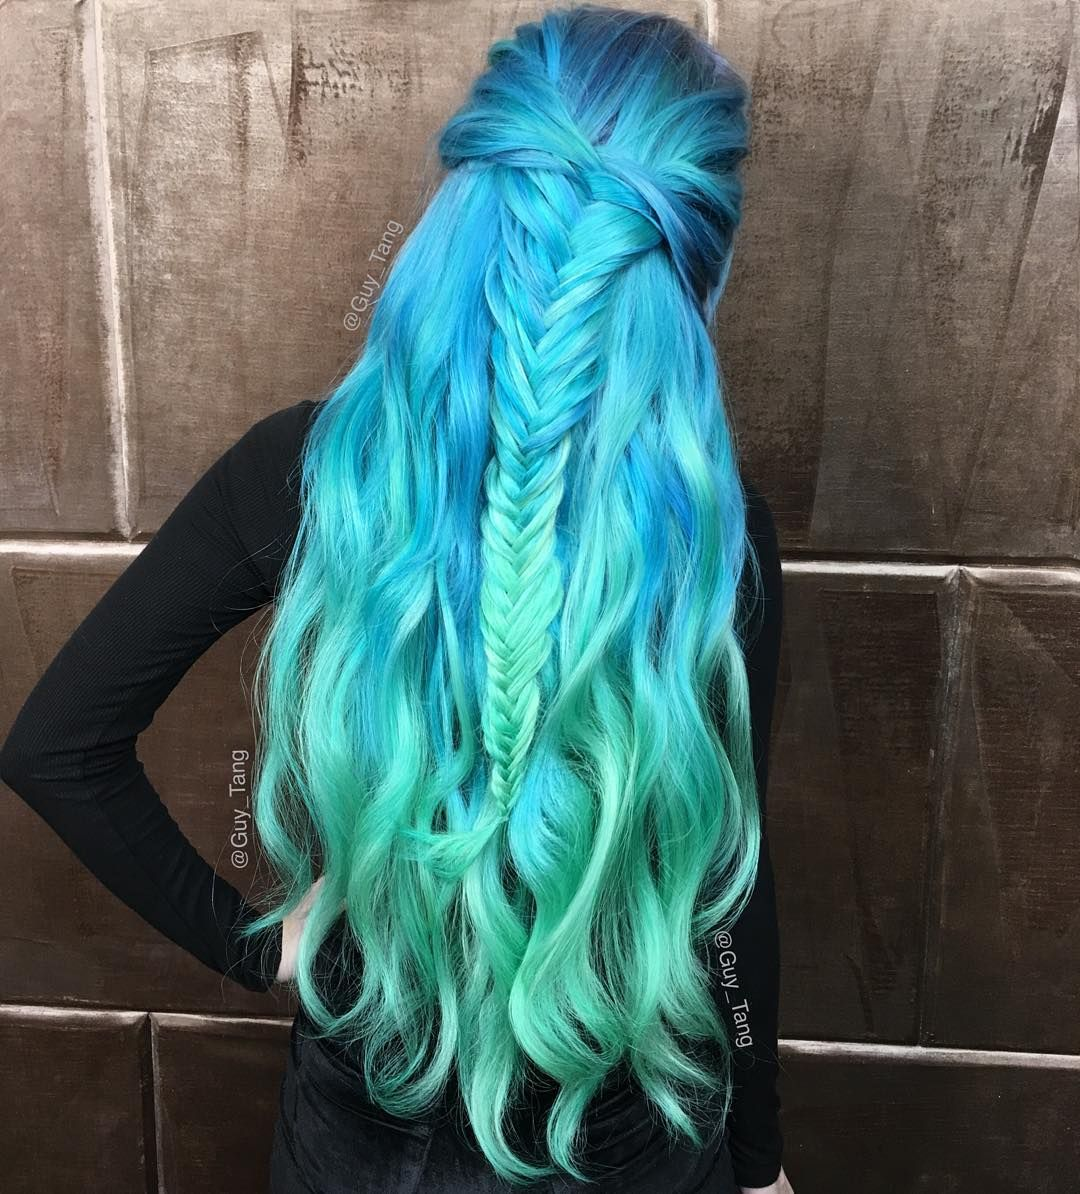 Wavy Mermaid Teal Blue Aquamarine Green Hair With Fishtail Braid